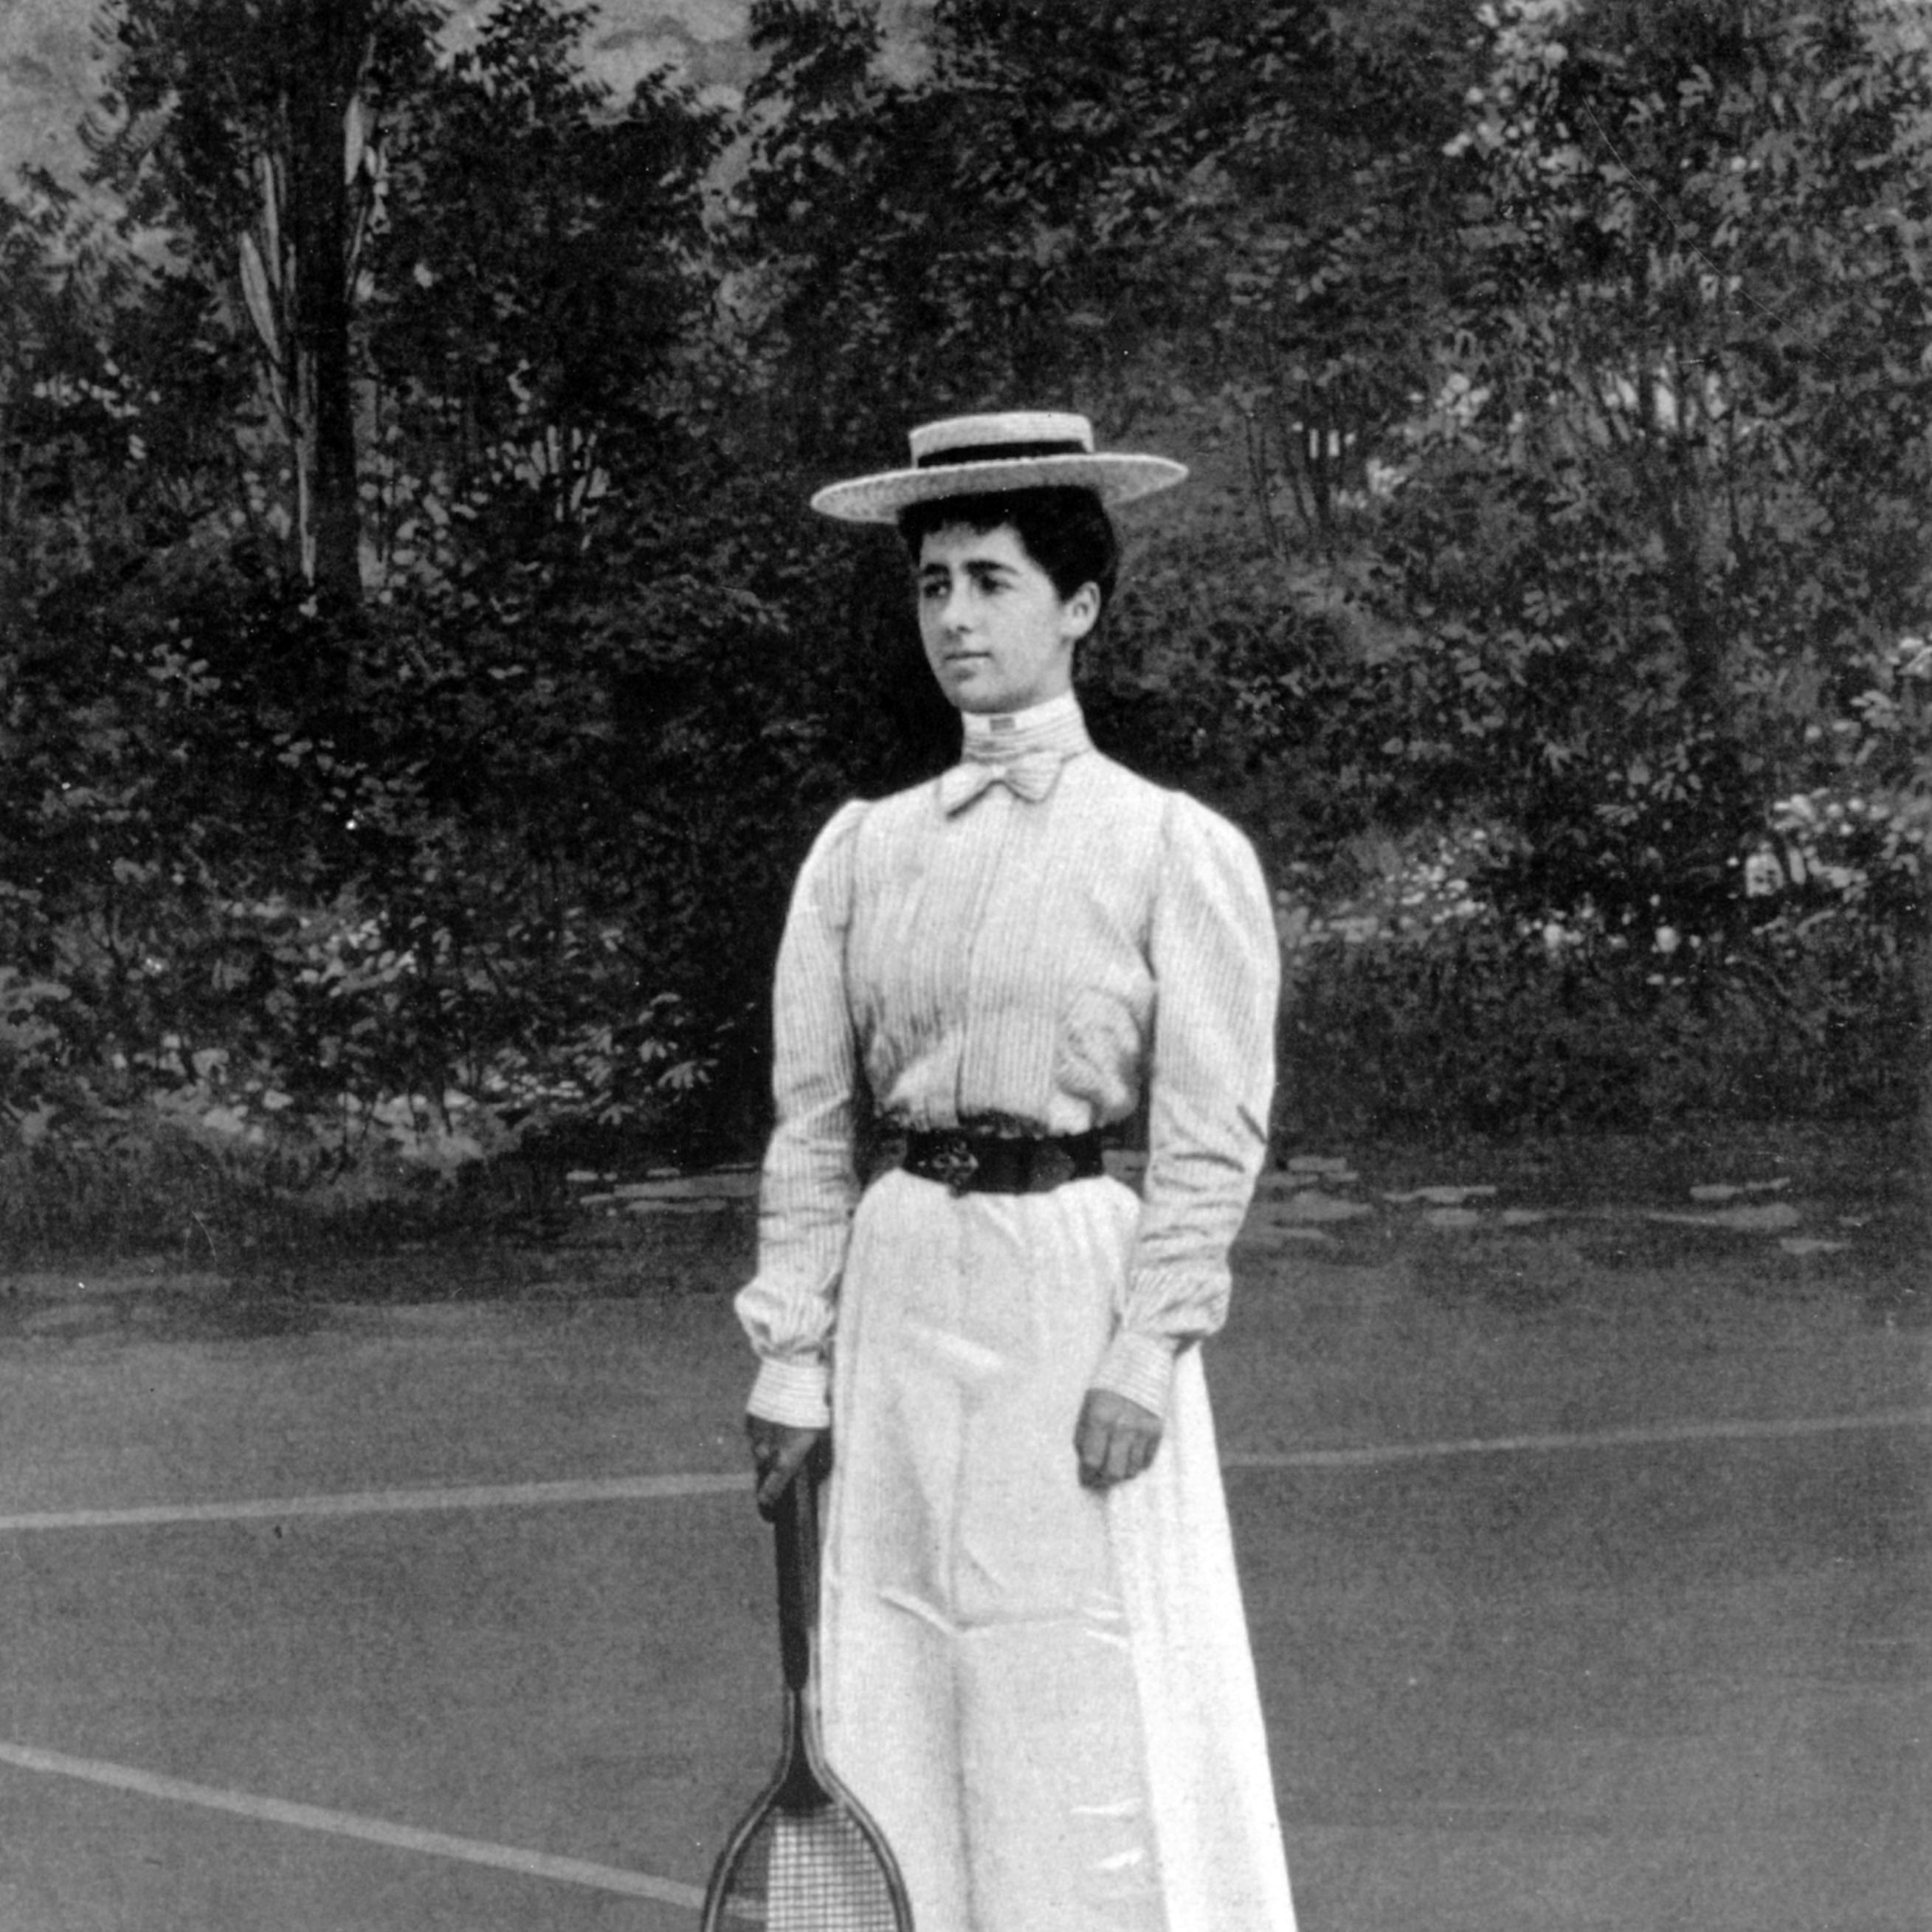 """<p>Helen Provost won the silver medal at the tennis women's singles in Paris, and in a full-length skirt, no less. Females taking part <a href=""""http://visforvintage.net/2012/08/03/olympics-sportswear-a-complete-history/"""" target=""""_blank"""">had no choice</a> but to play in ankle-length dresses with the long sleeves and high necks of the time period, plus shoes with a heel. </p>"""